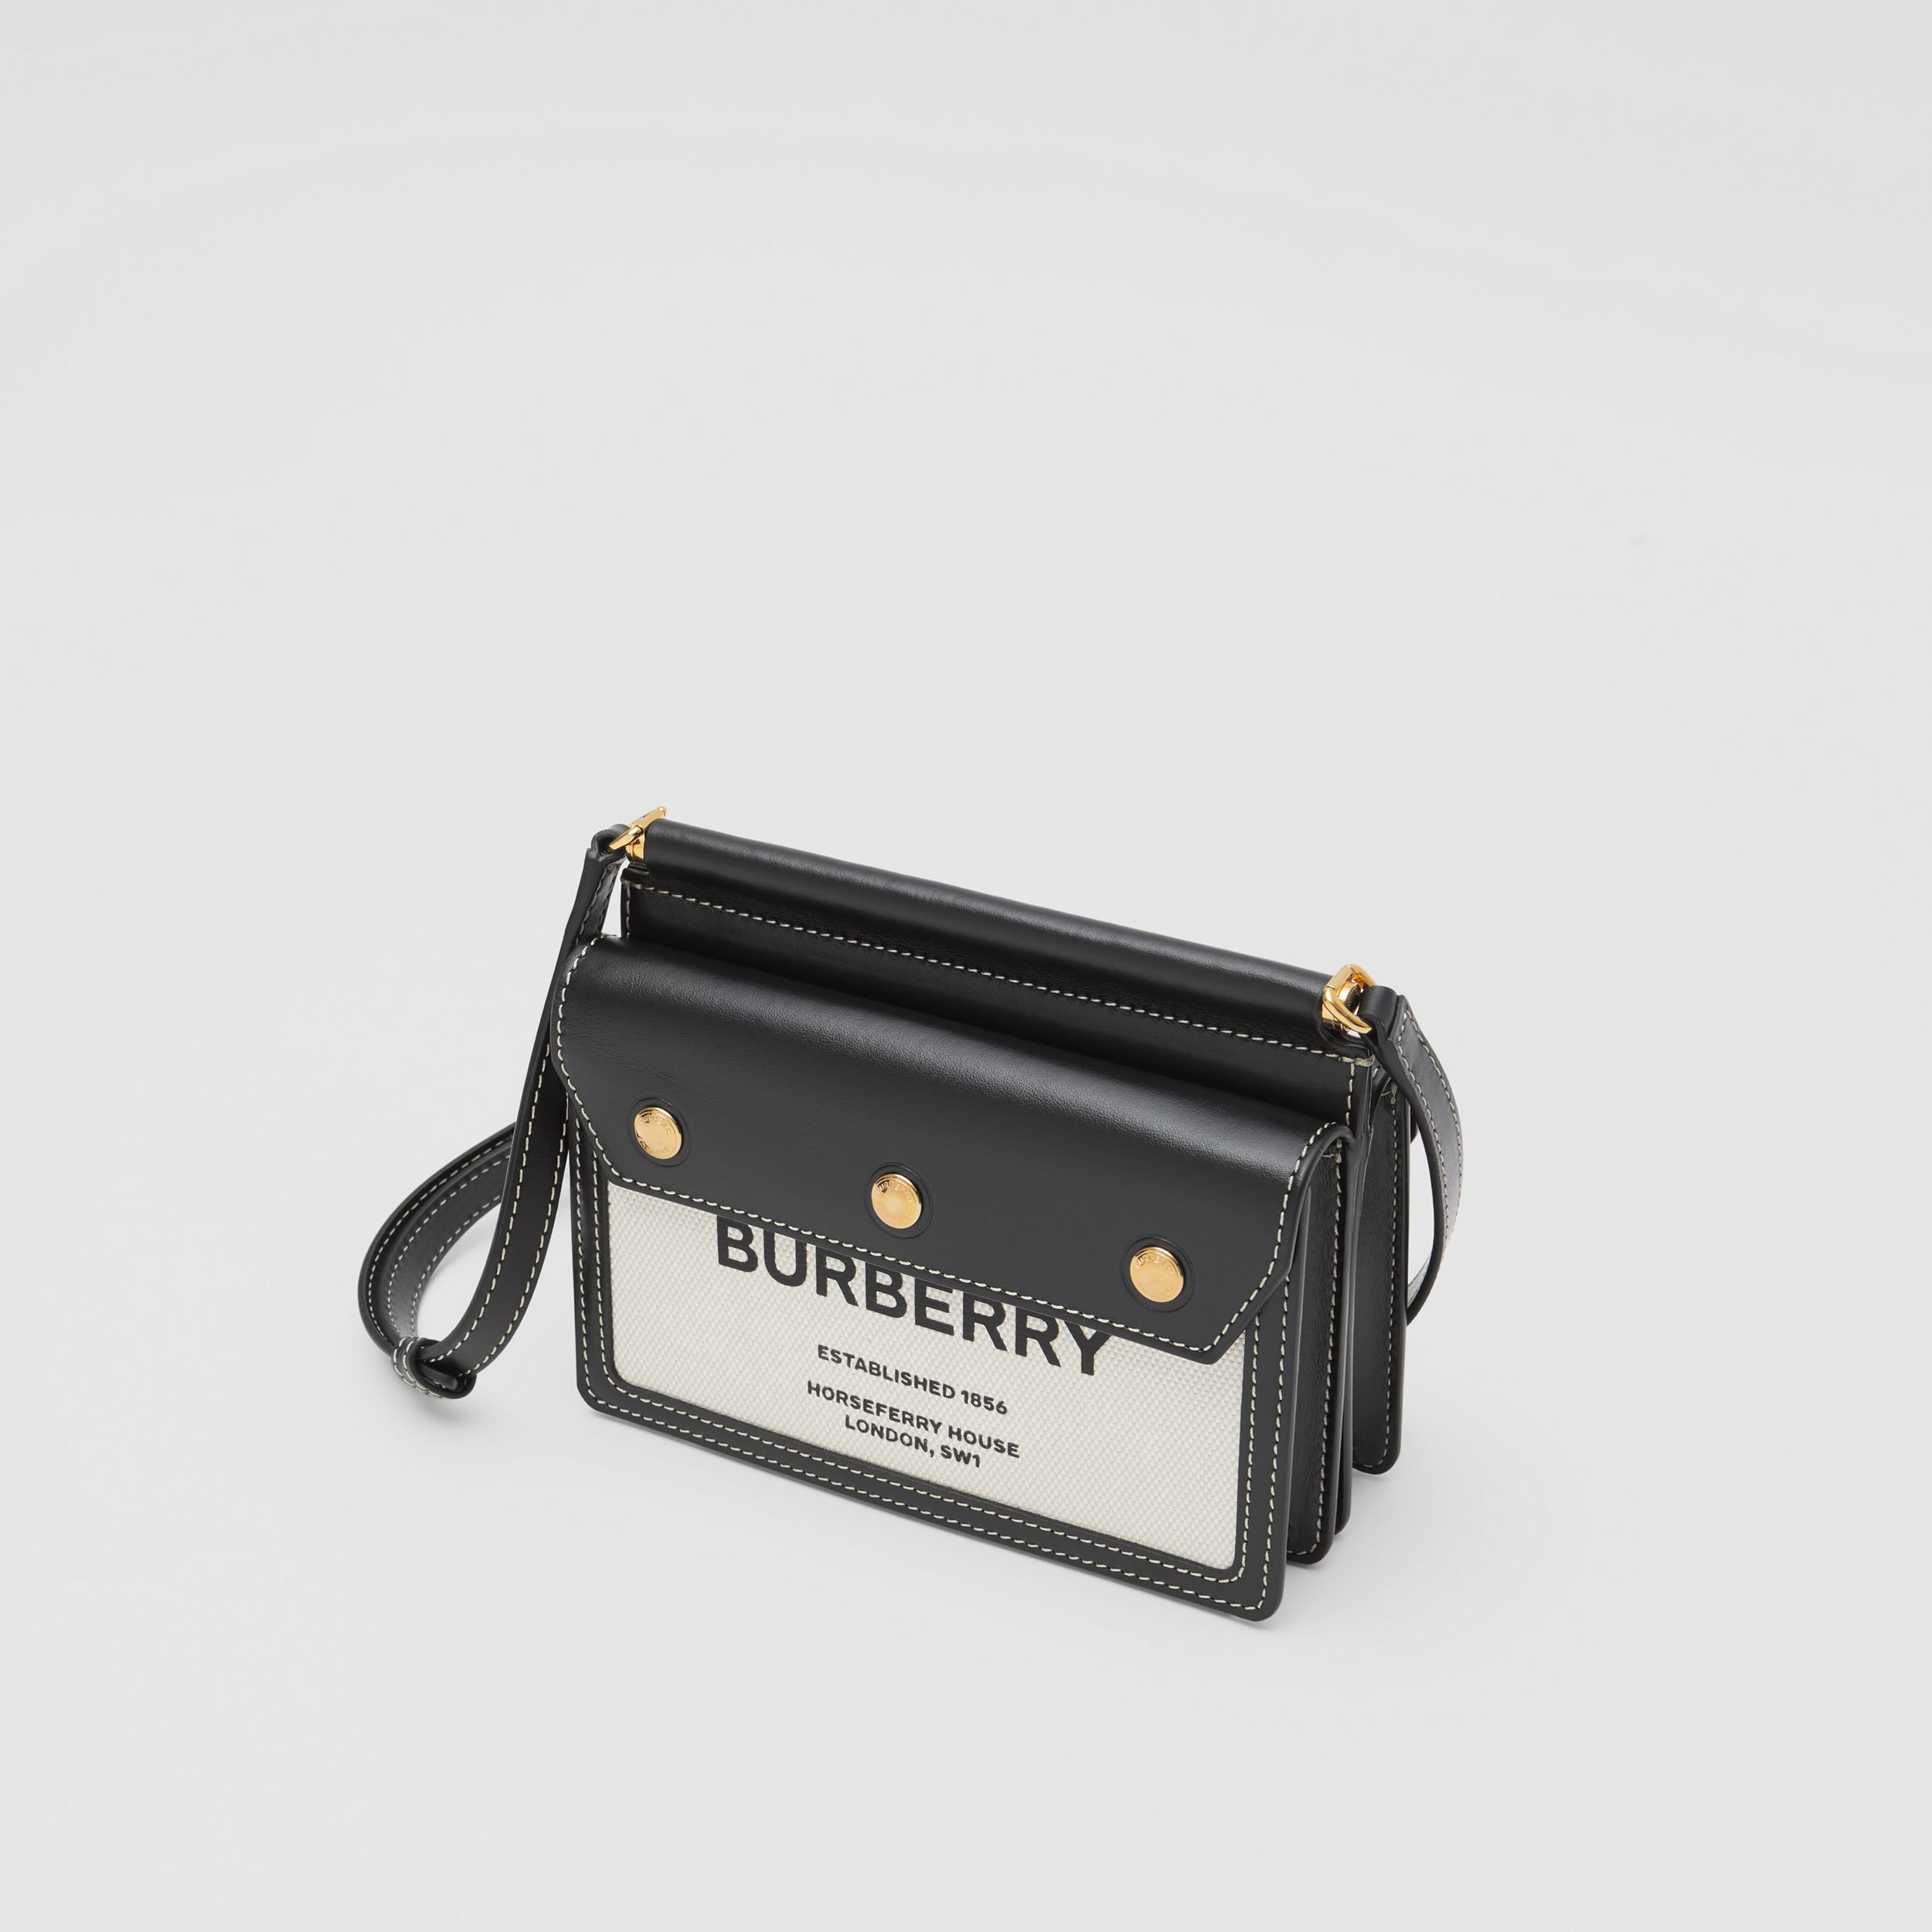 Mini Horseferry Print Title Bag with Pocket Detail - Women | Burberry - 4